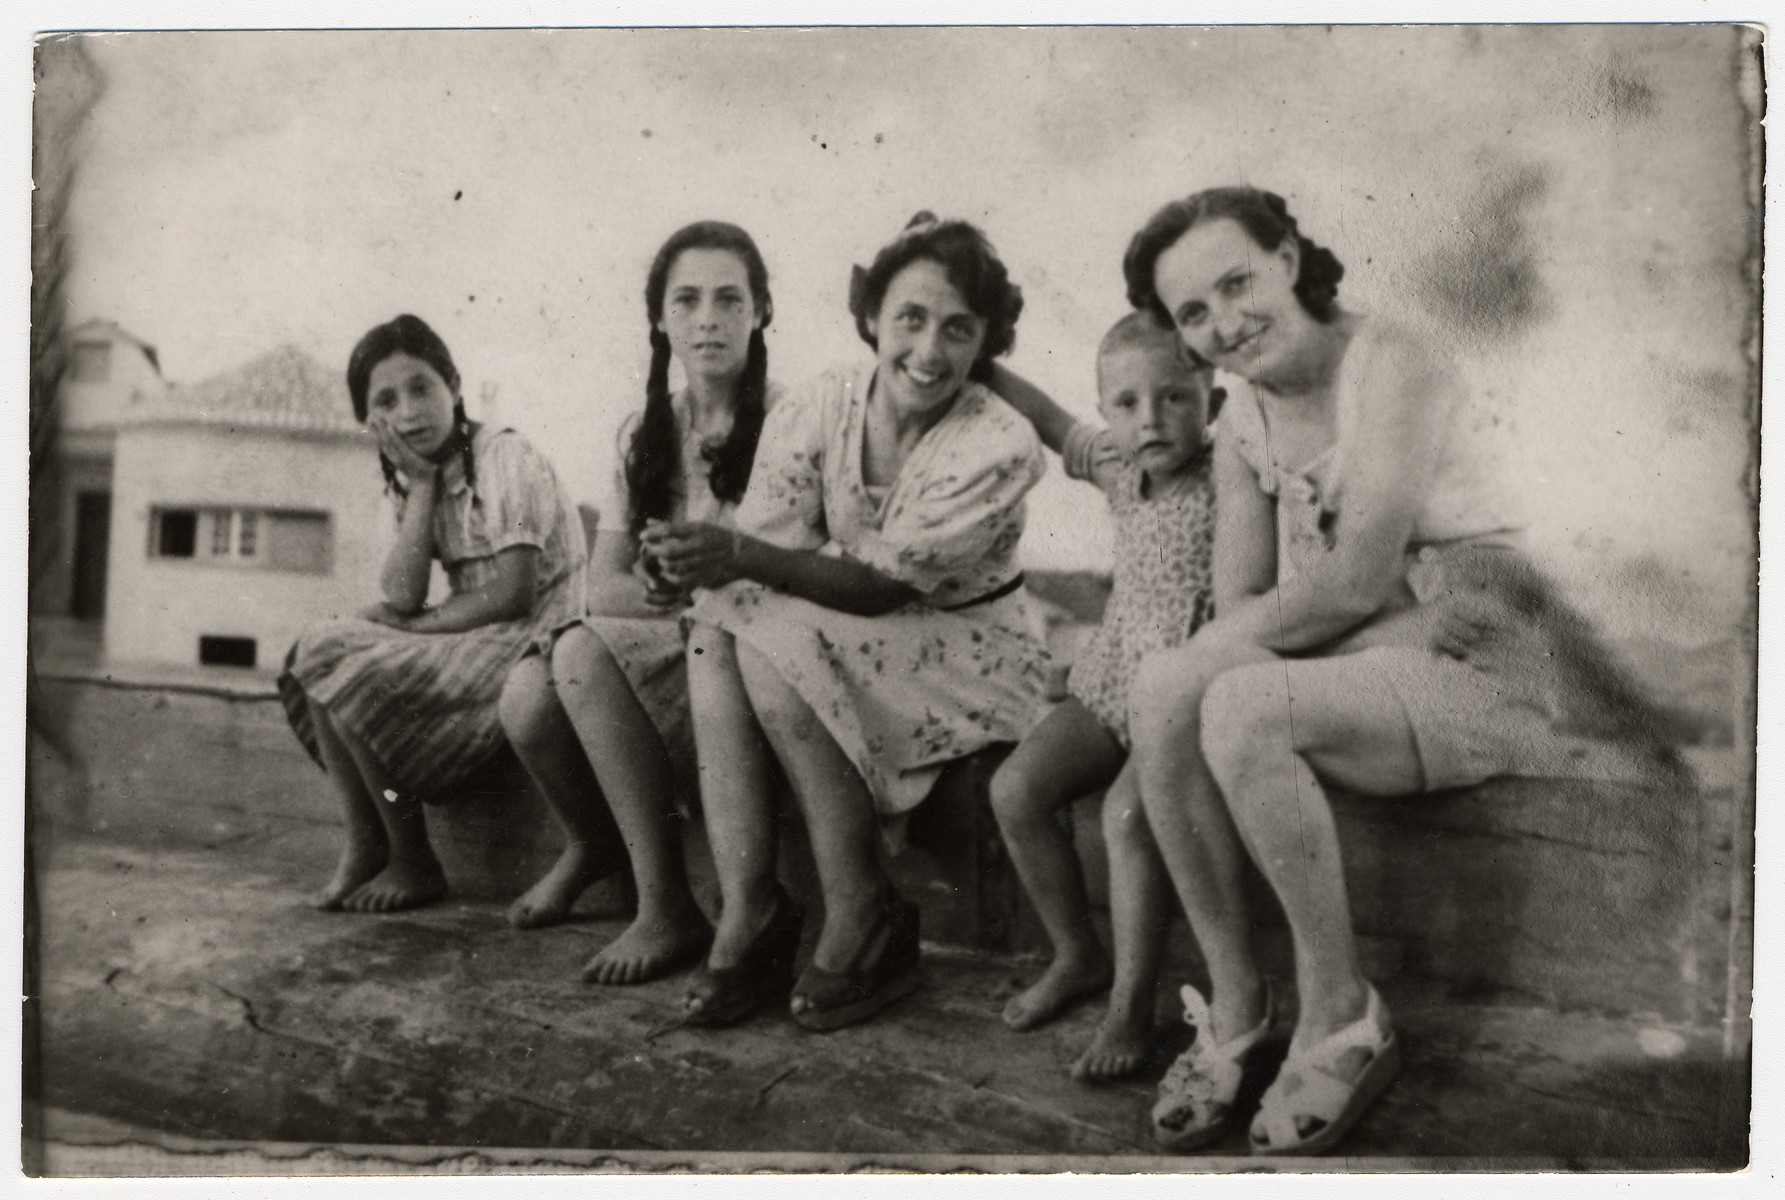 A Jewish mother and child in hiding in Albania sit on a wooden ledge together with their resucer and her family.  From left to right are unknown, Johanna Gerechter, Alice Gerechter, Luan Pilku, and Lizalotte Boetge-Pilku.